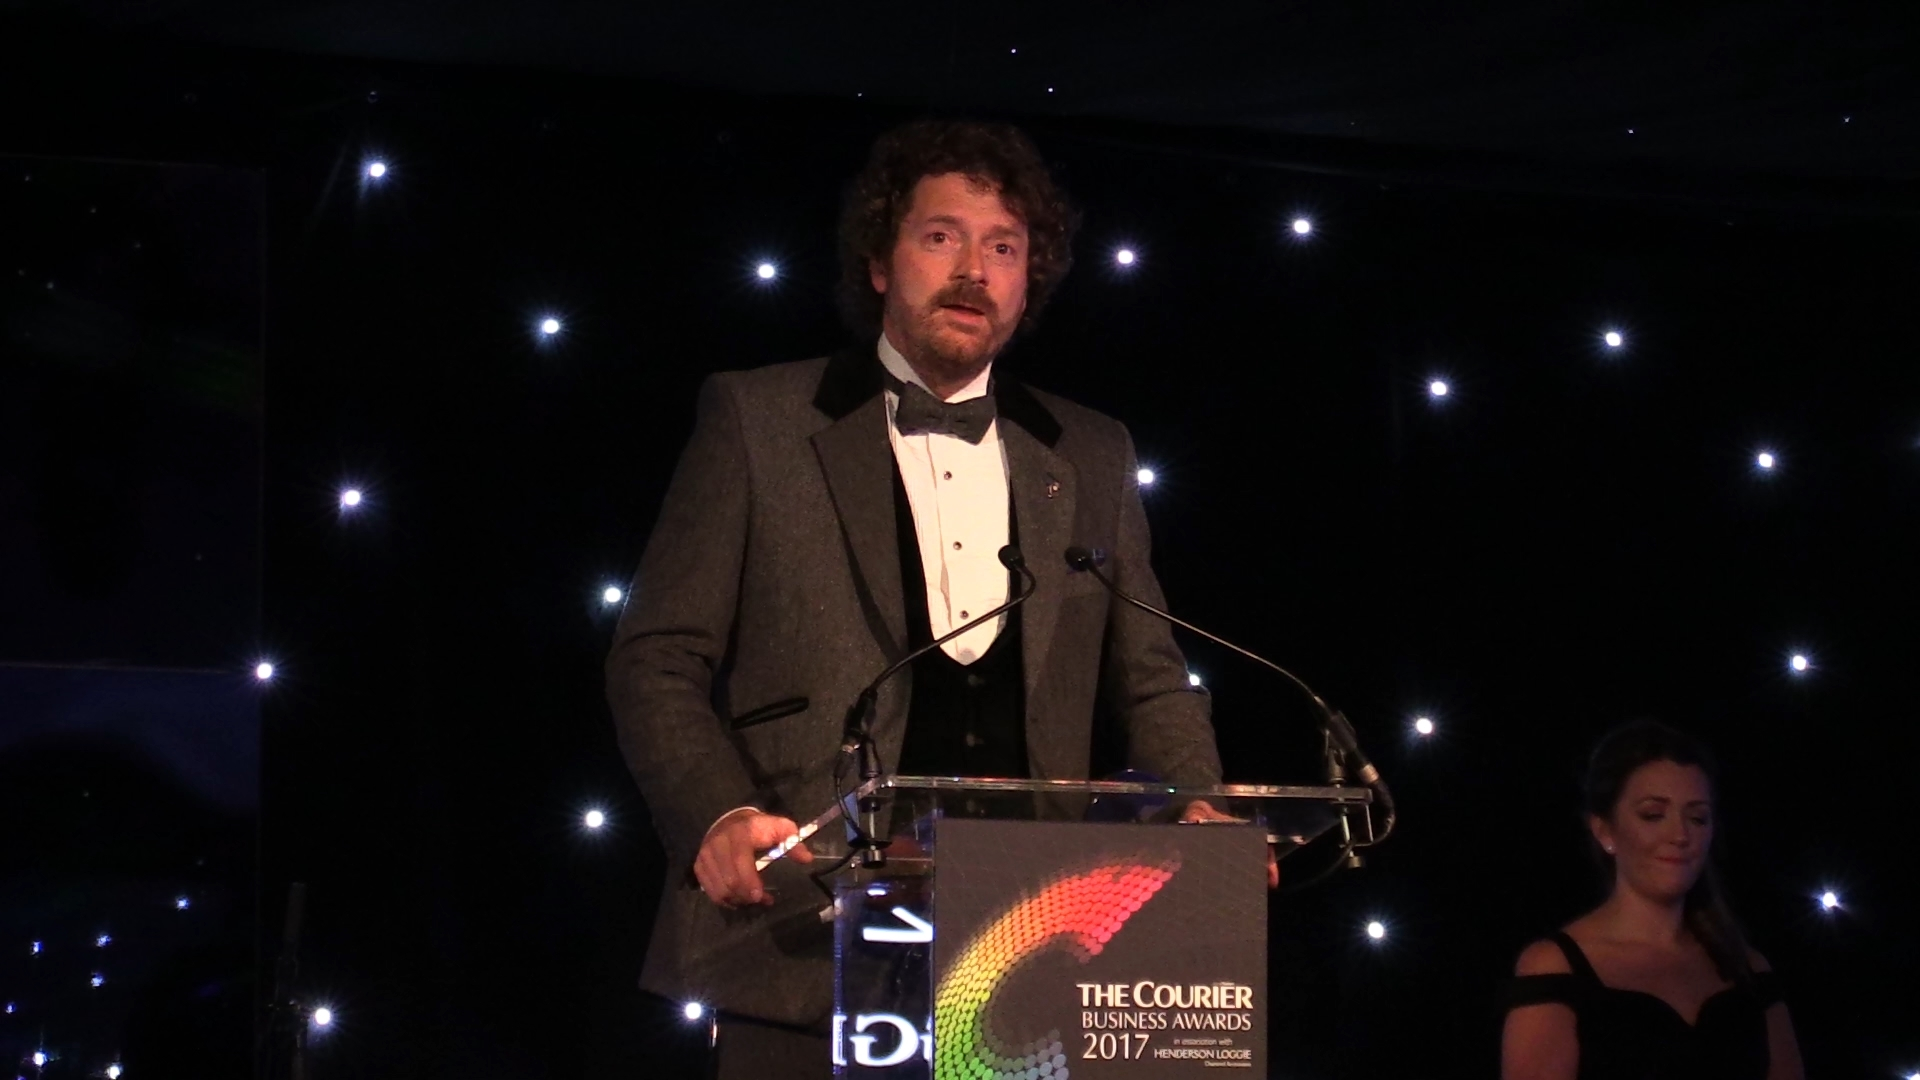 Chris van der Kuyl on stage at the Courier Business Awards.